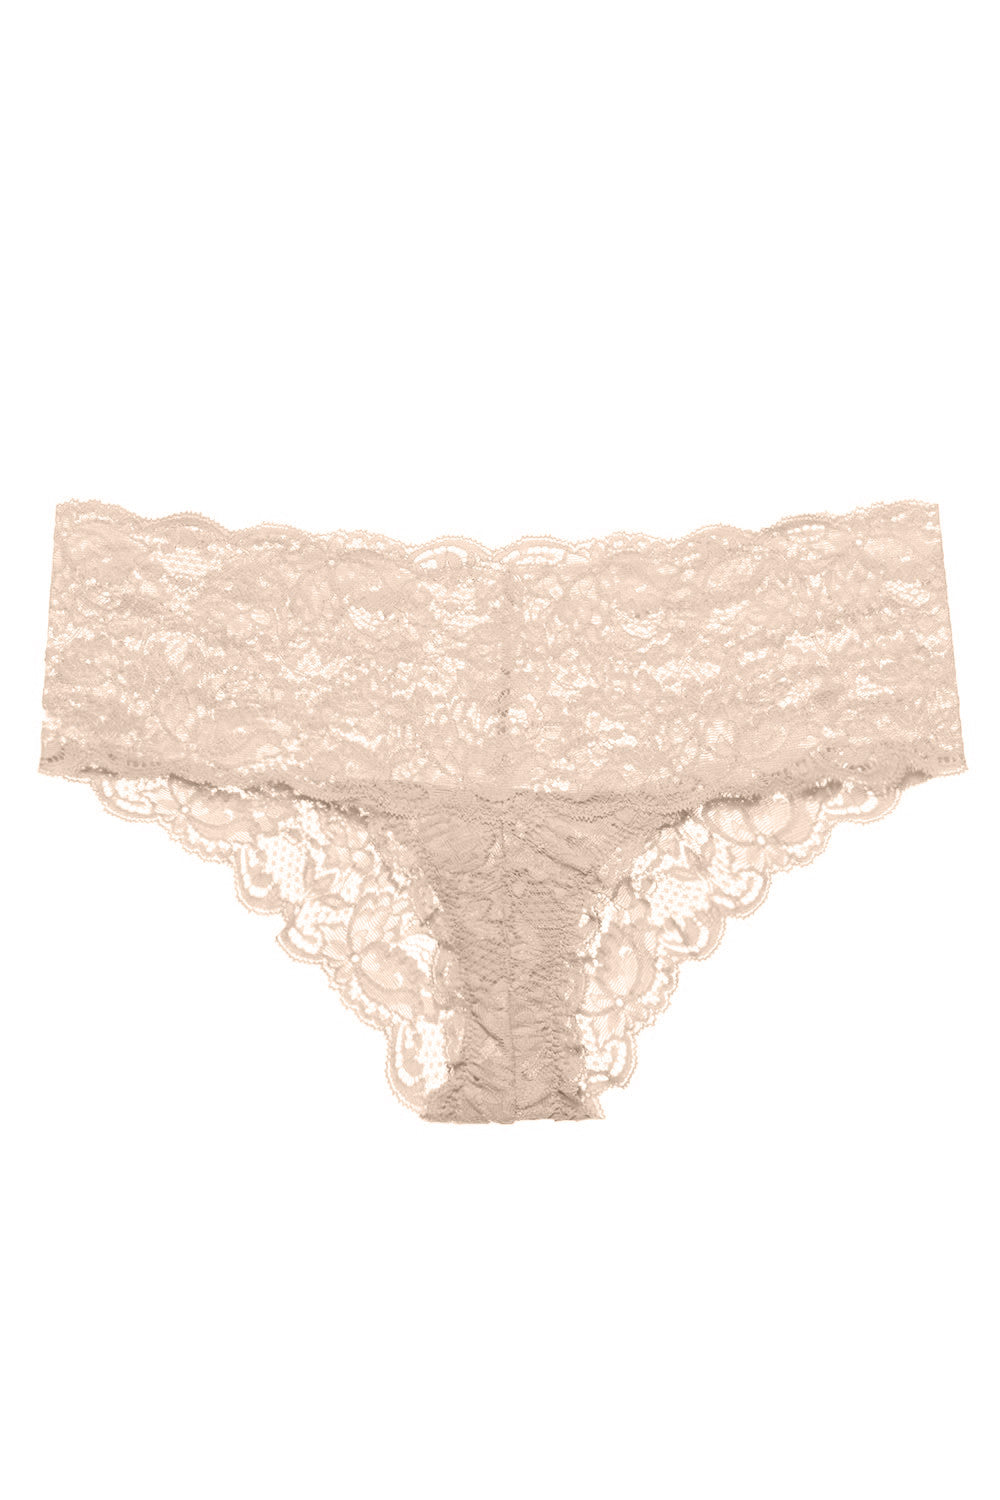 Red Never Say Never Hottie Lace Hotpant